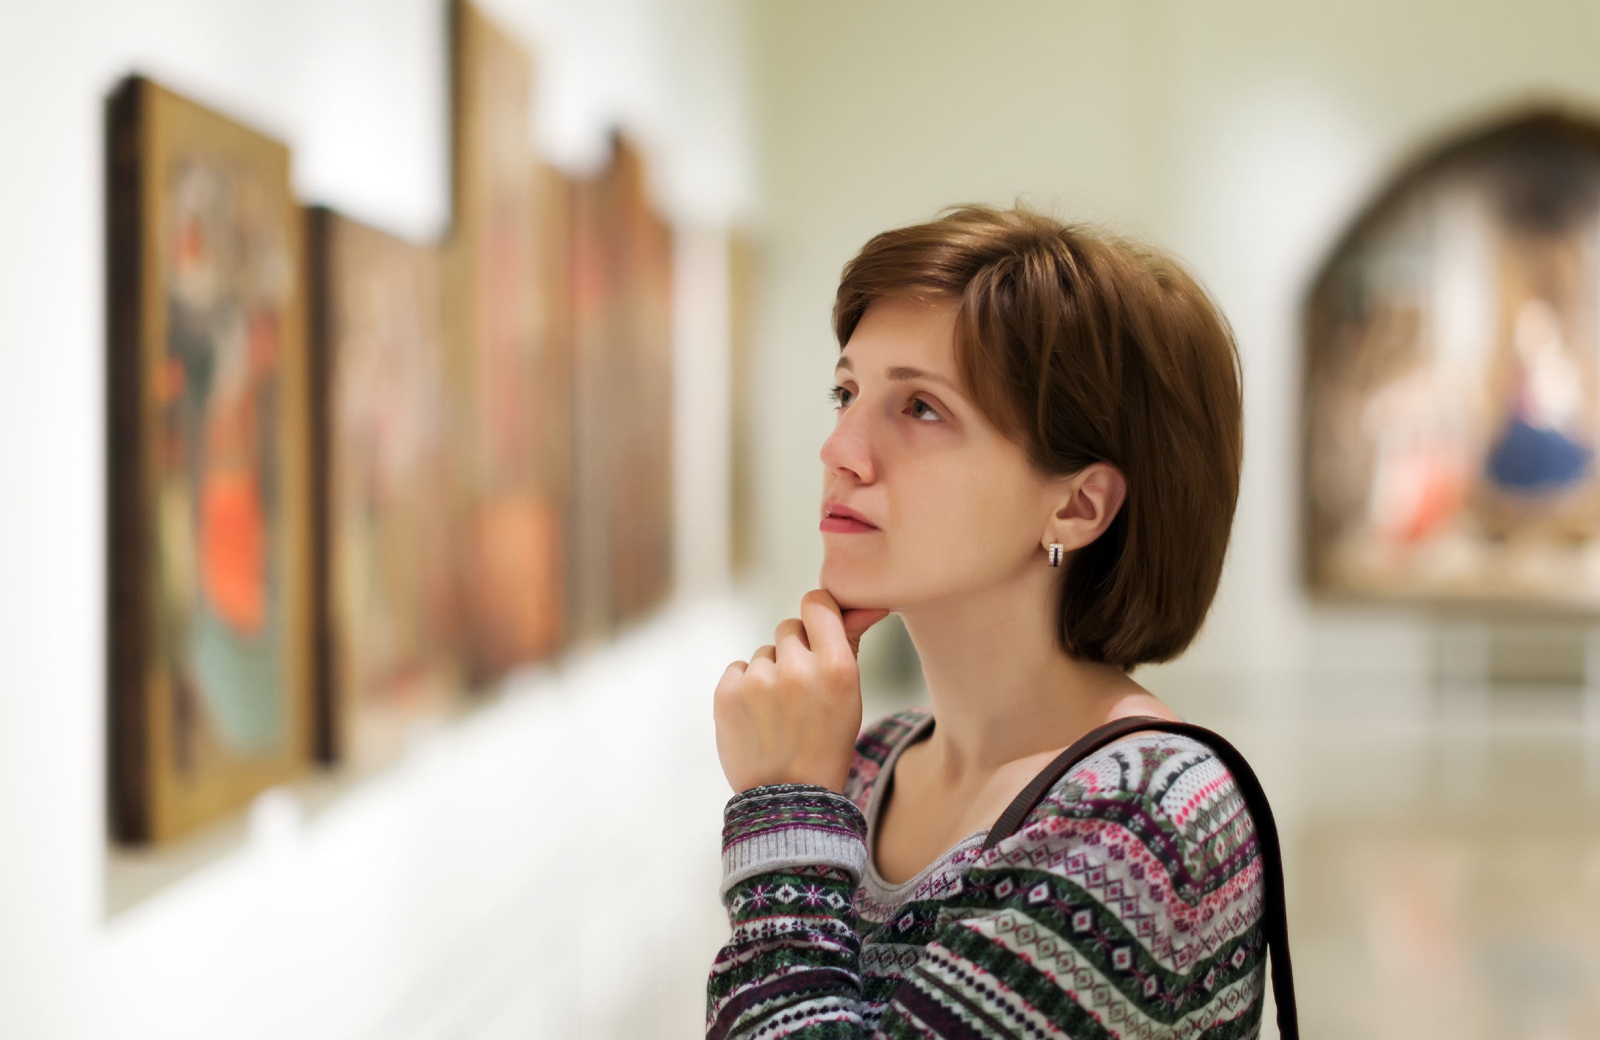 woman with short brown hair looking longingly at a painting in a museum - The Cole NYC East Side apartments